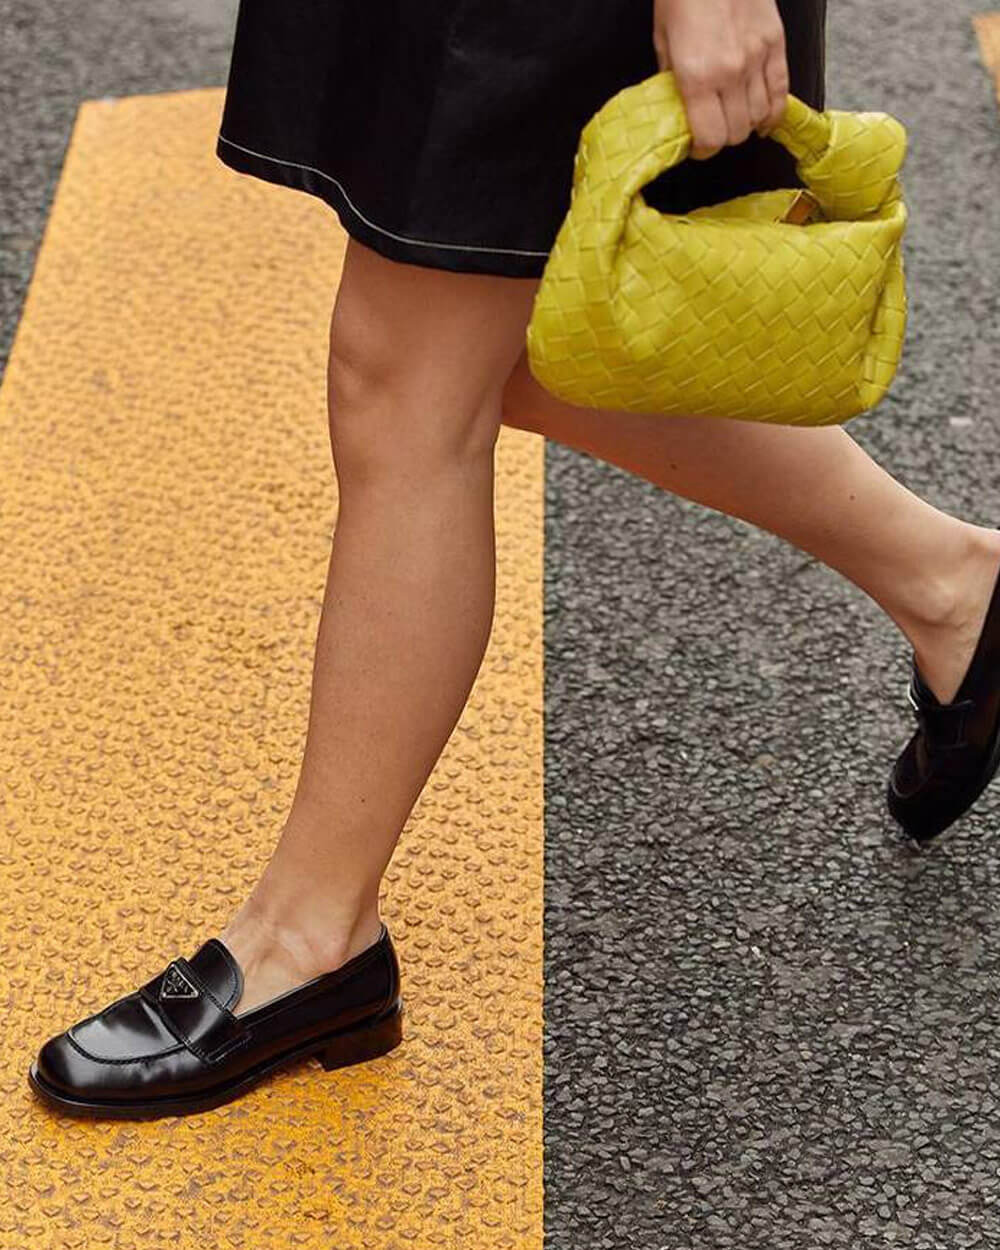 How-to-Look-Rich-shoes